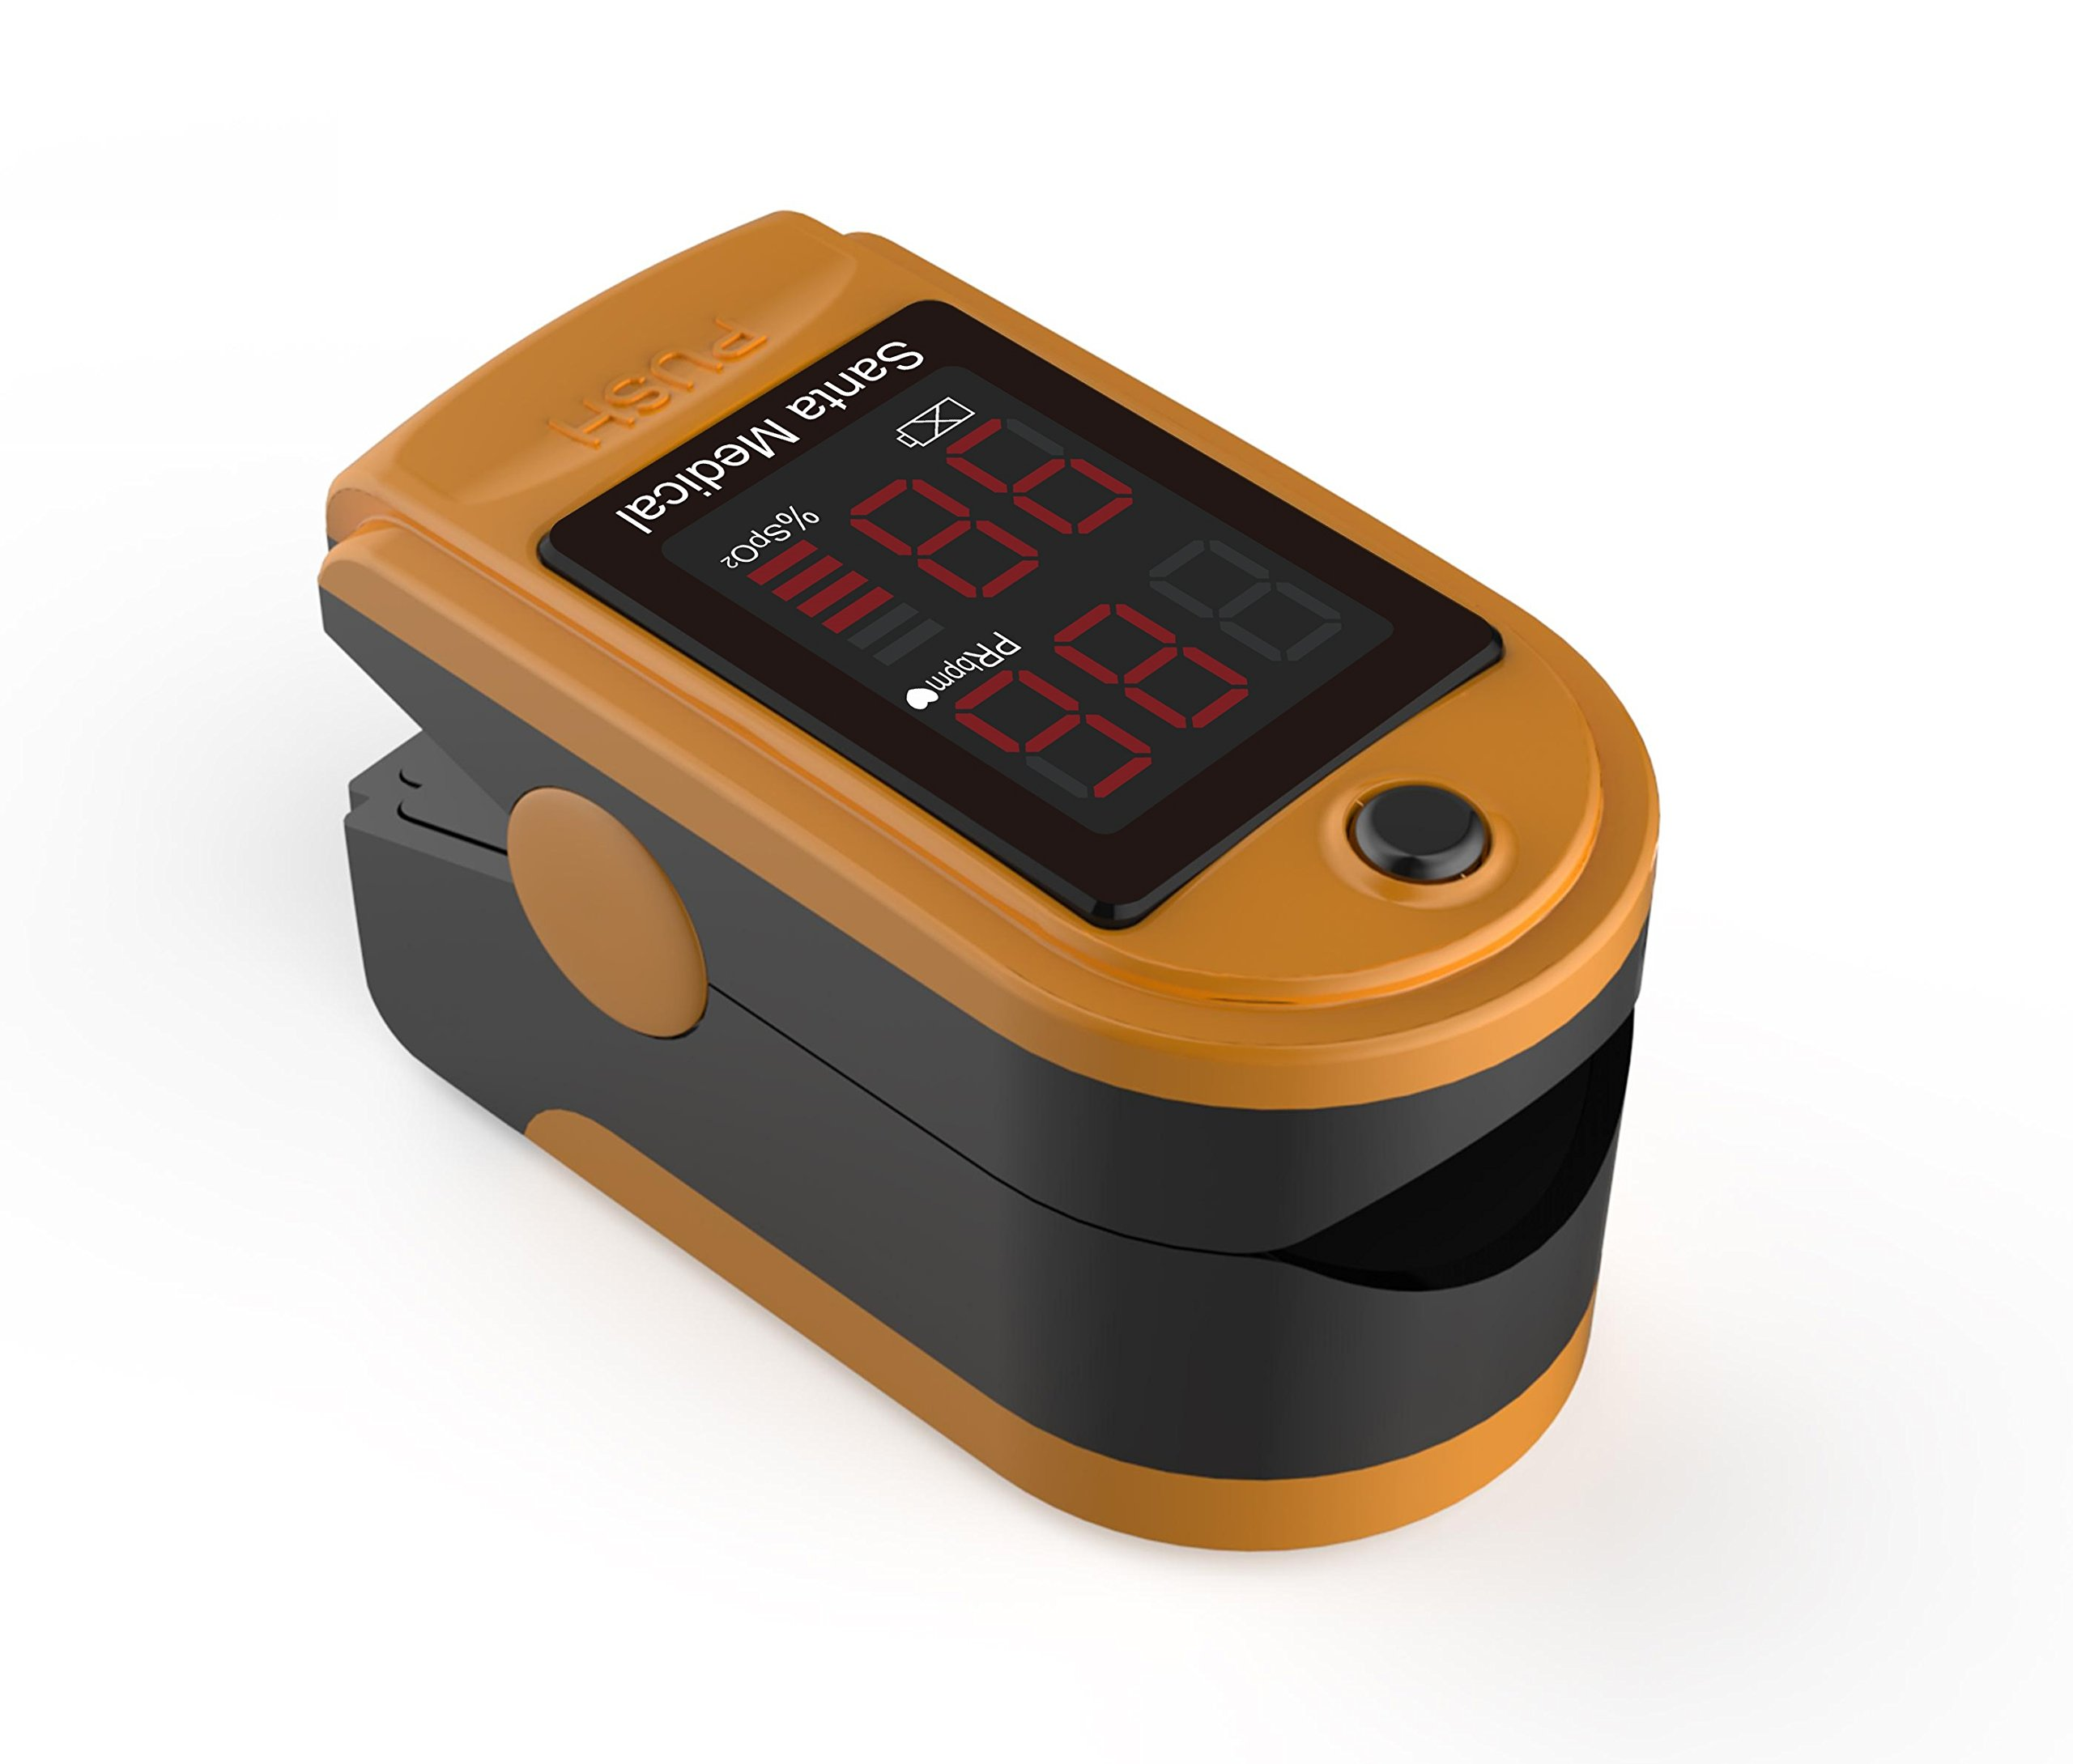 Santamedical Generation 2 Fingertip Pulse Oximeter Oximetry Blood Oxygen Saturation Monitor with carrying case, batteries and lanyard (Orange)